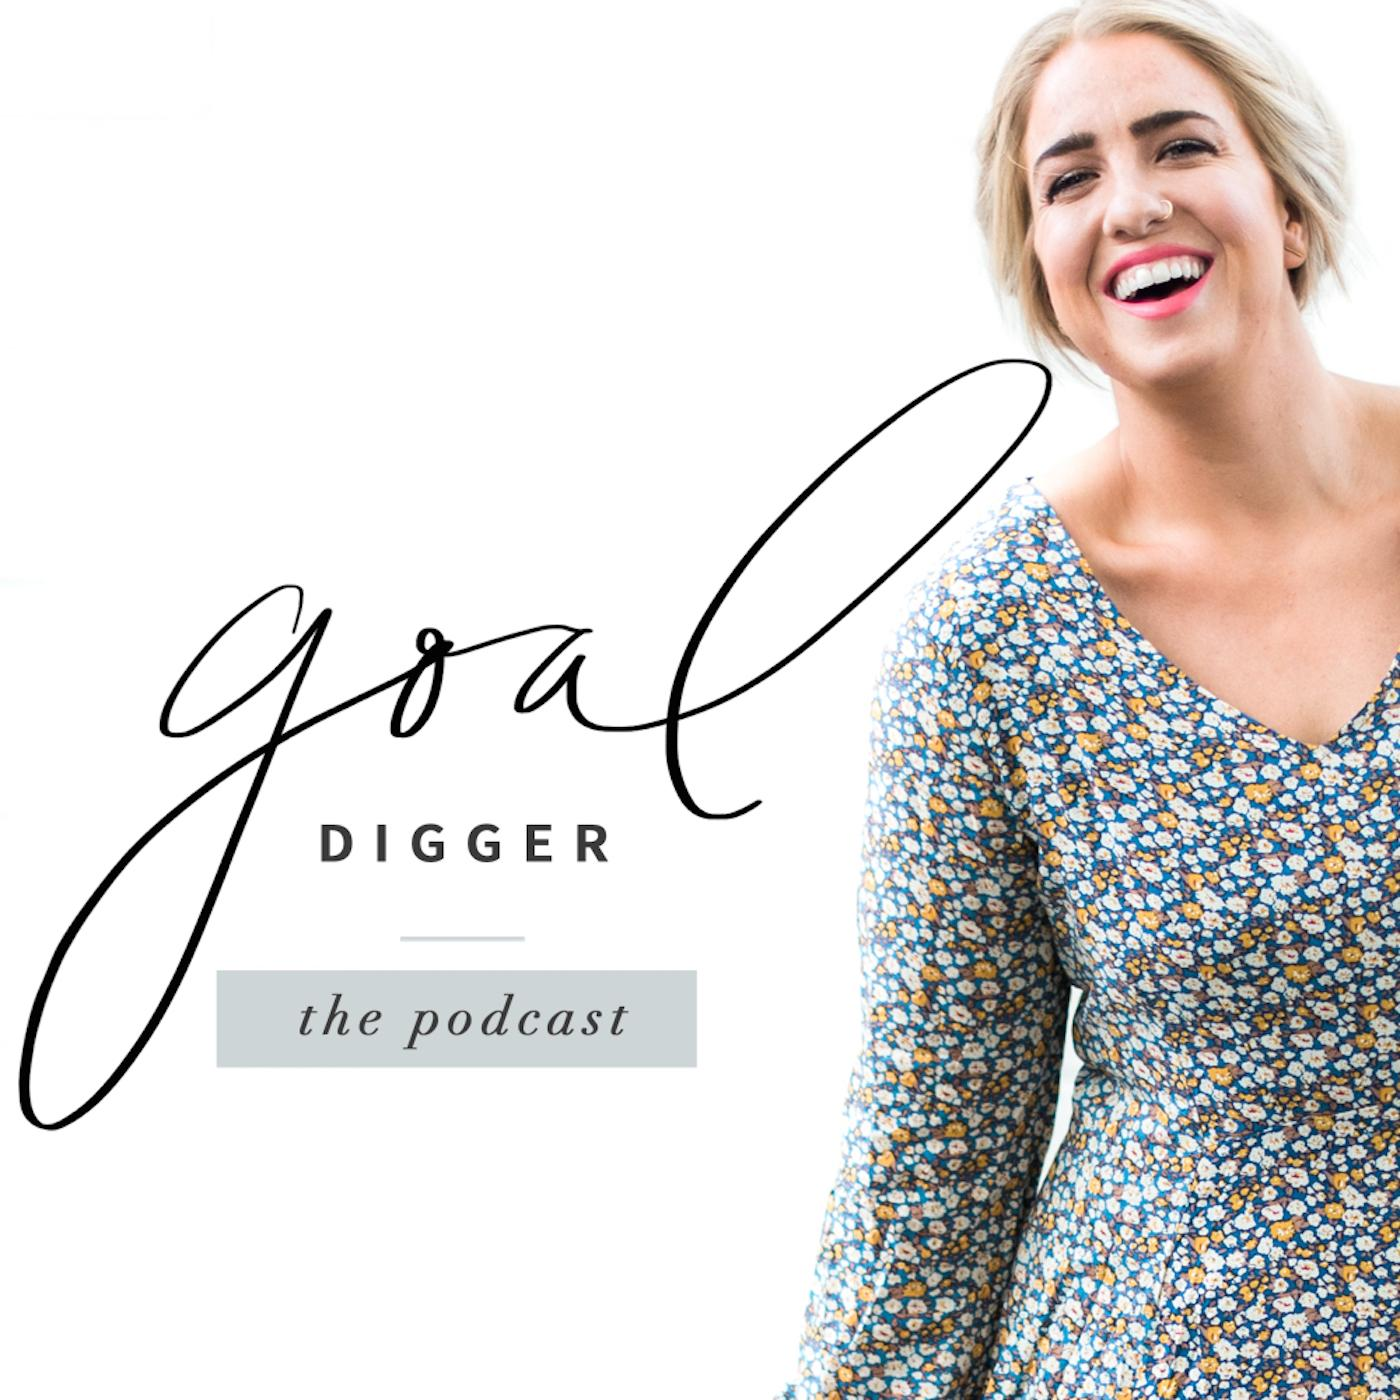 The Goal Digger Podcast